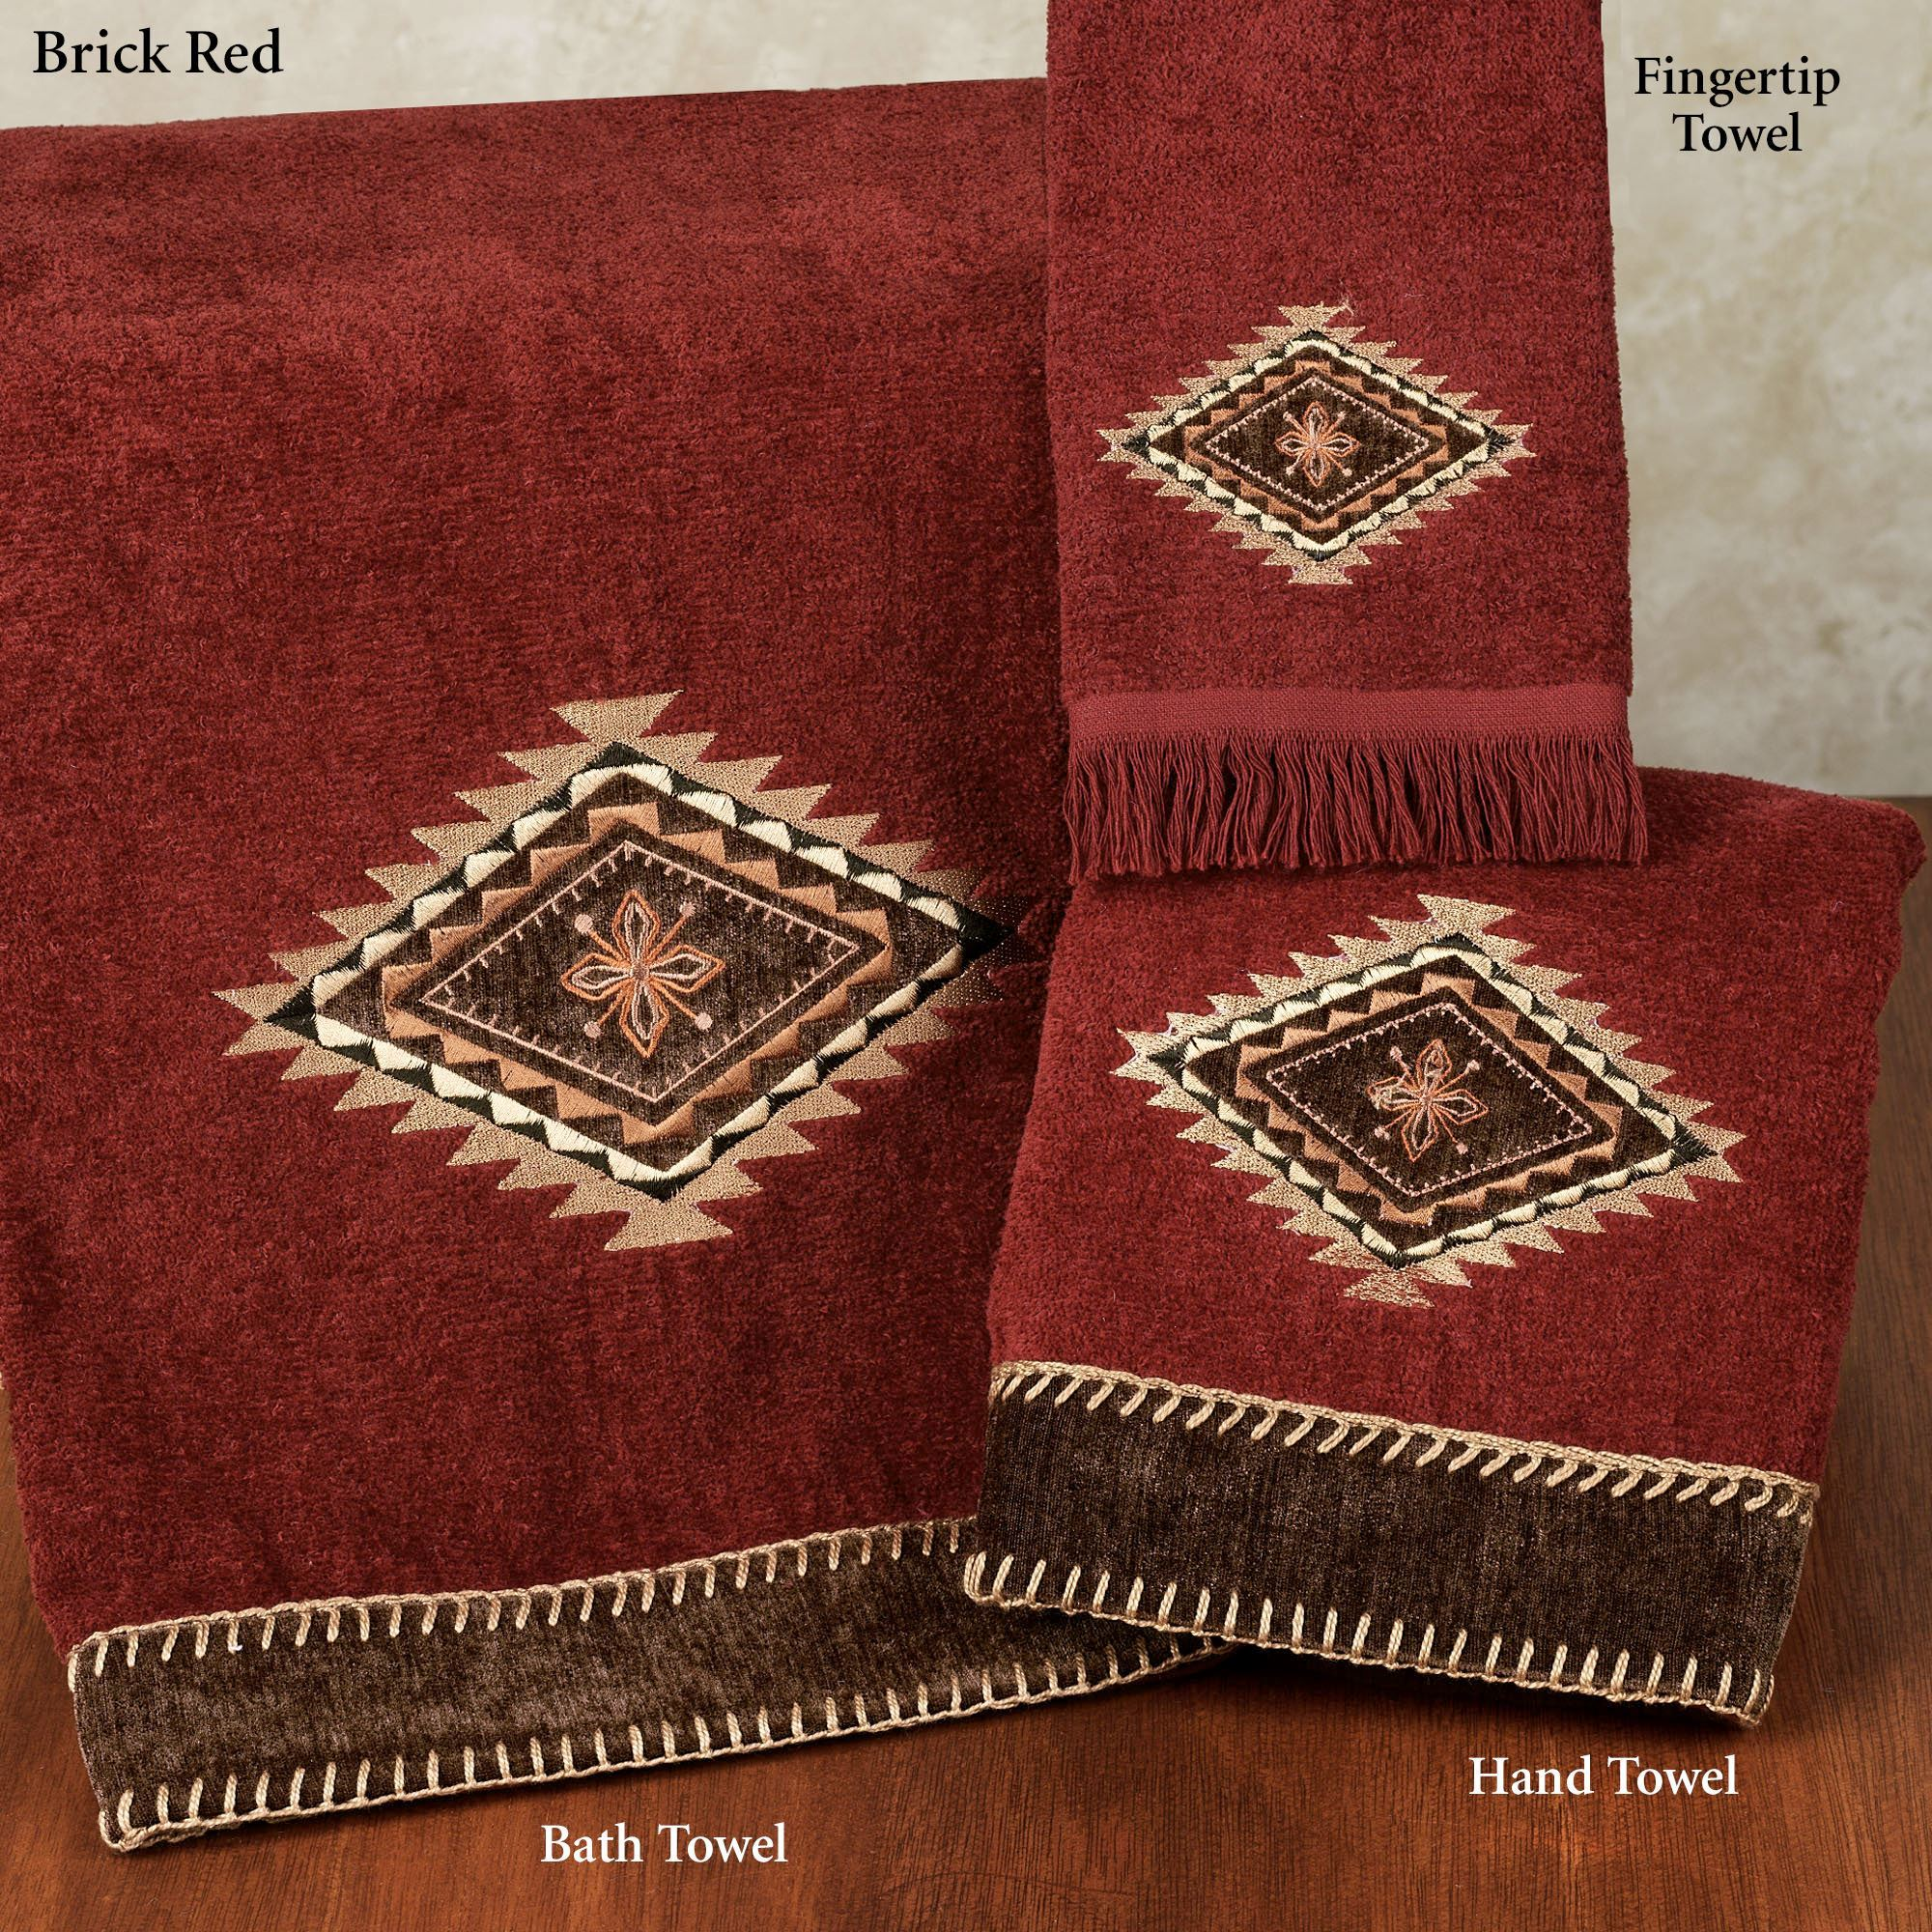 Mojave Bath Towel Brick Red